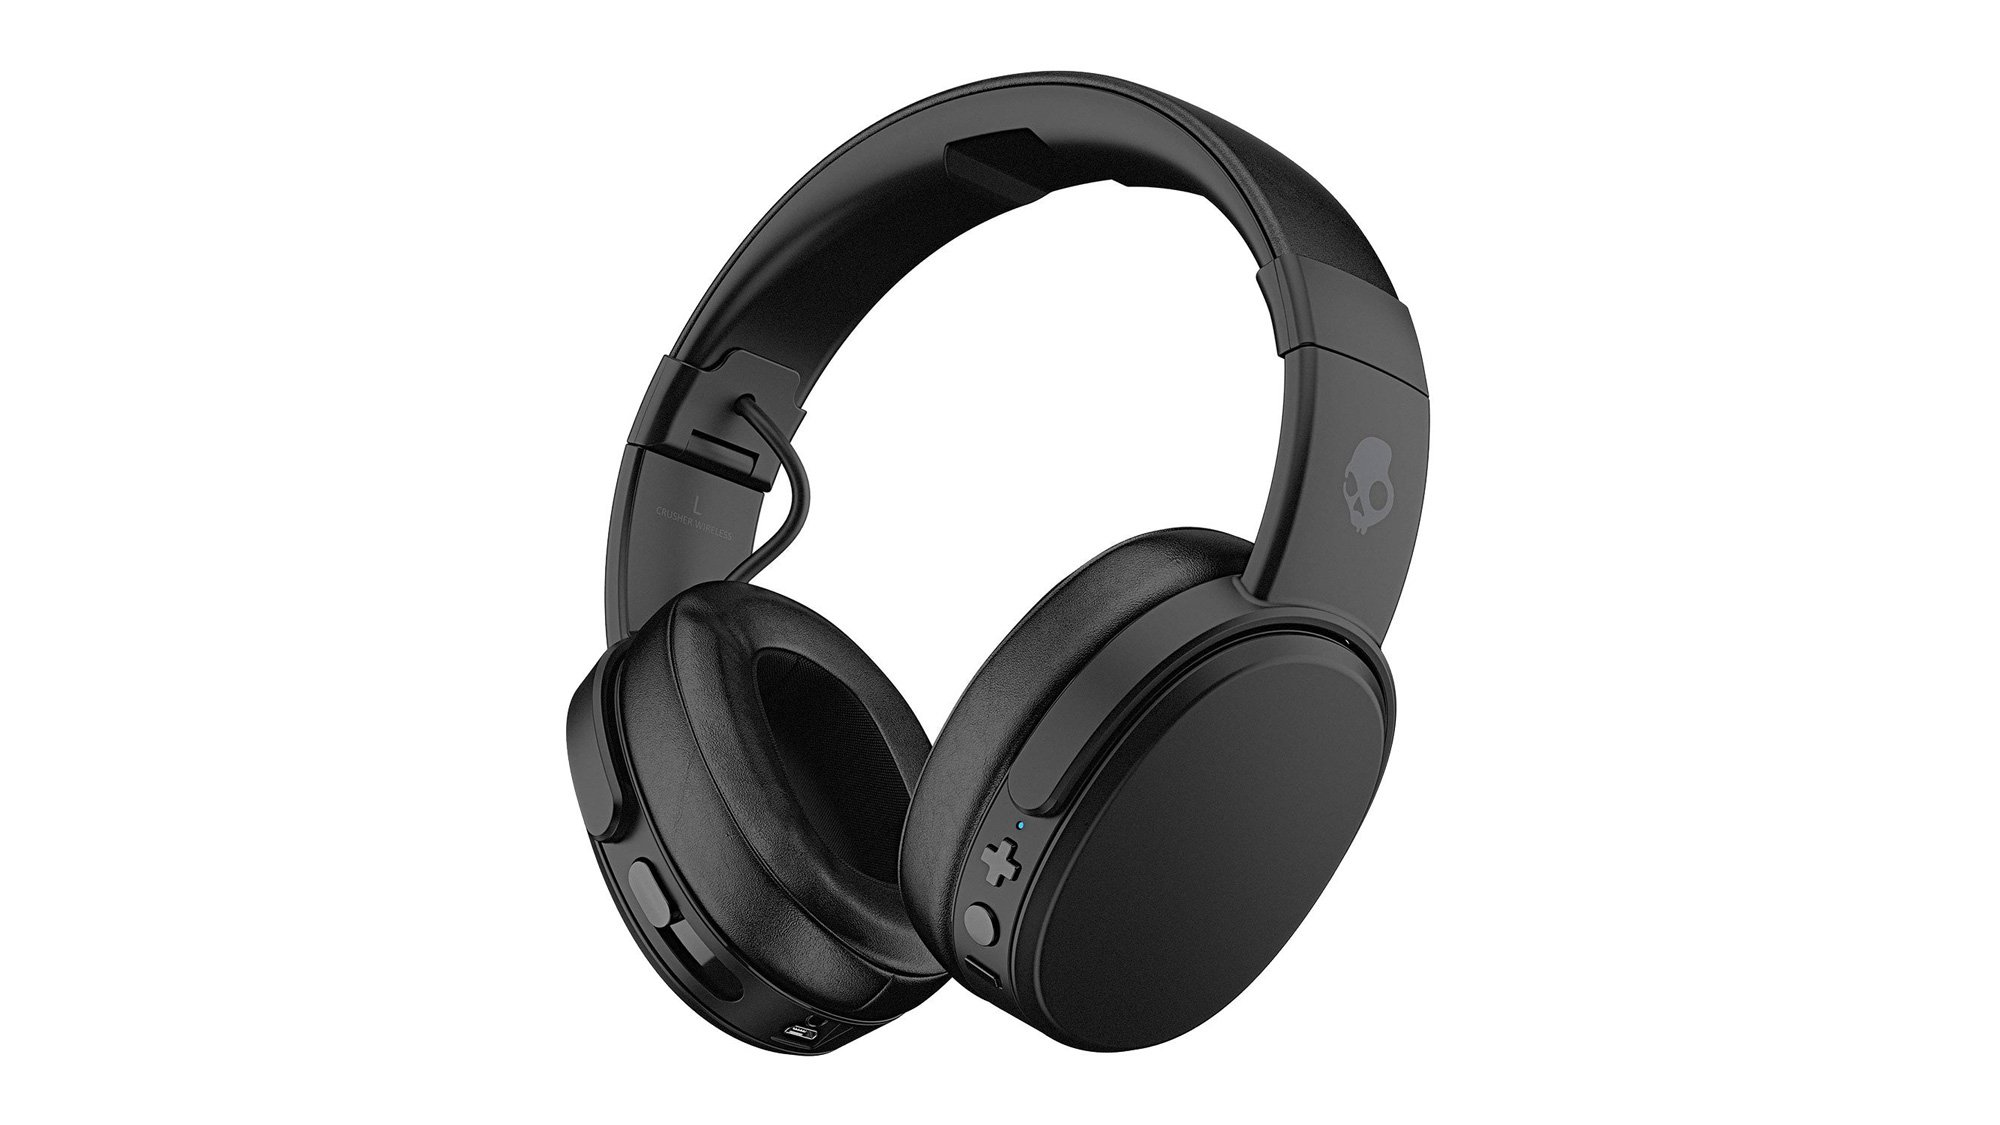 Studio headphones over ear bluetooth - Bowers & Wilkins P7 Wireless review: A luxury headphone that looks as good as it sounds